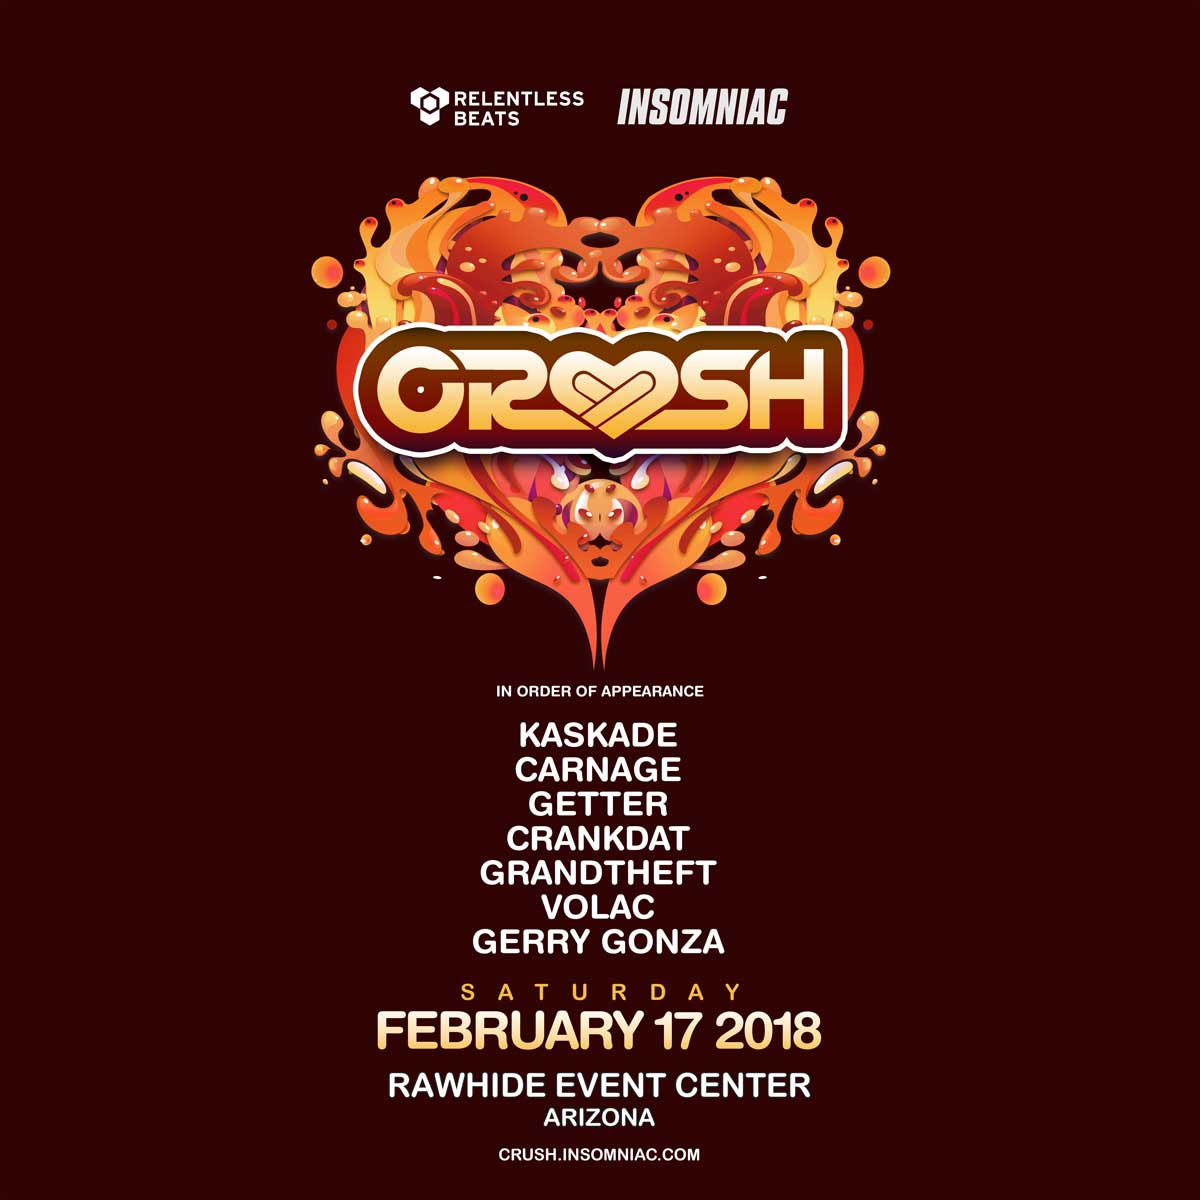 Insomniac announces monumental line-ups for their multi-city Valentine's tour78881deacf994fabb0a173652b363cd5.image!jpeg.80343.jpg.crush 2018 Square